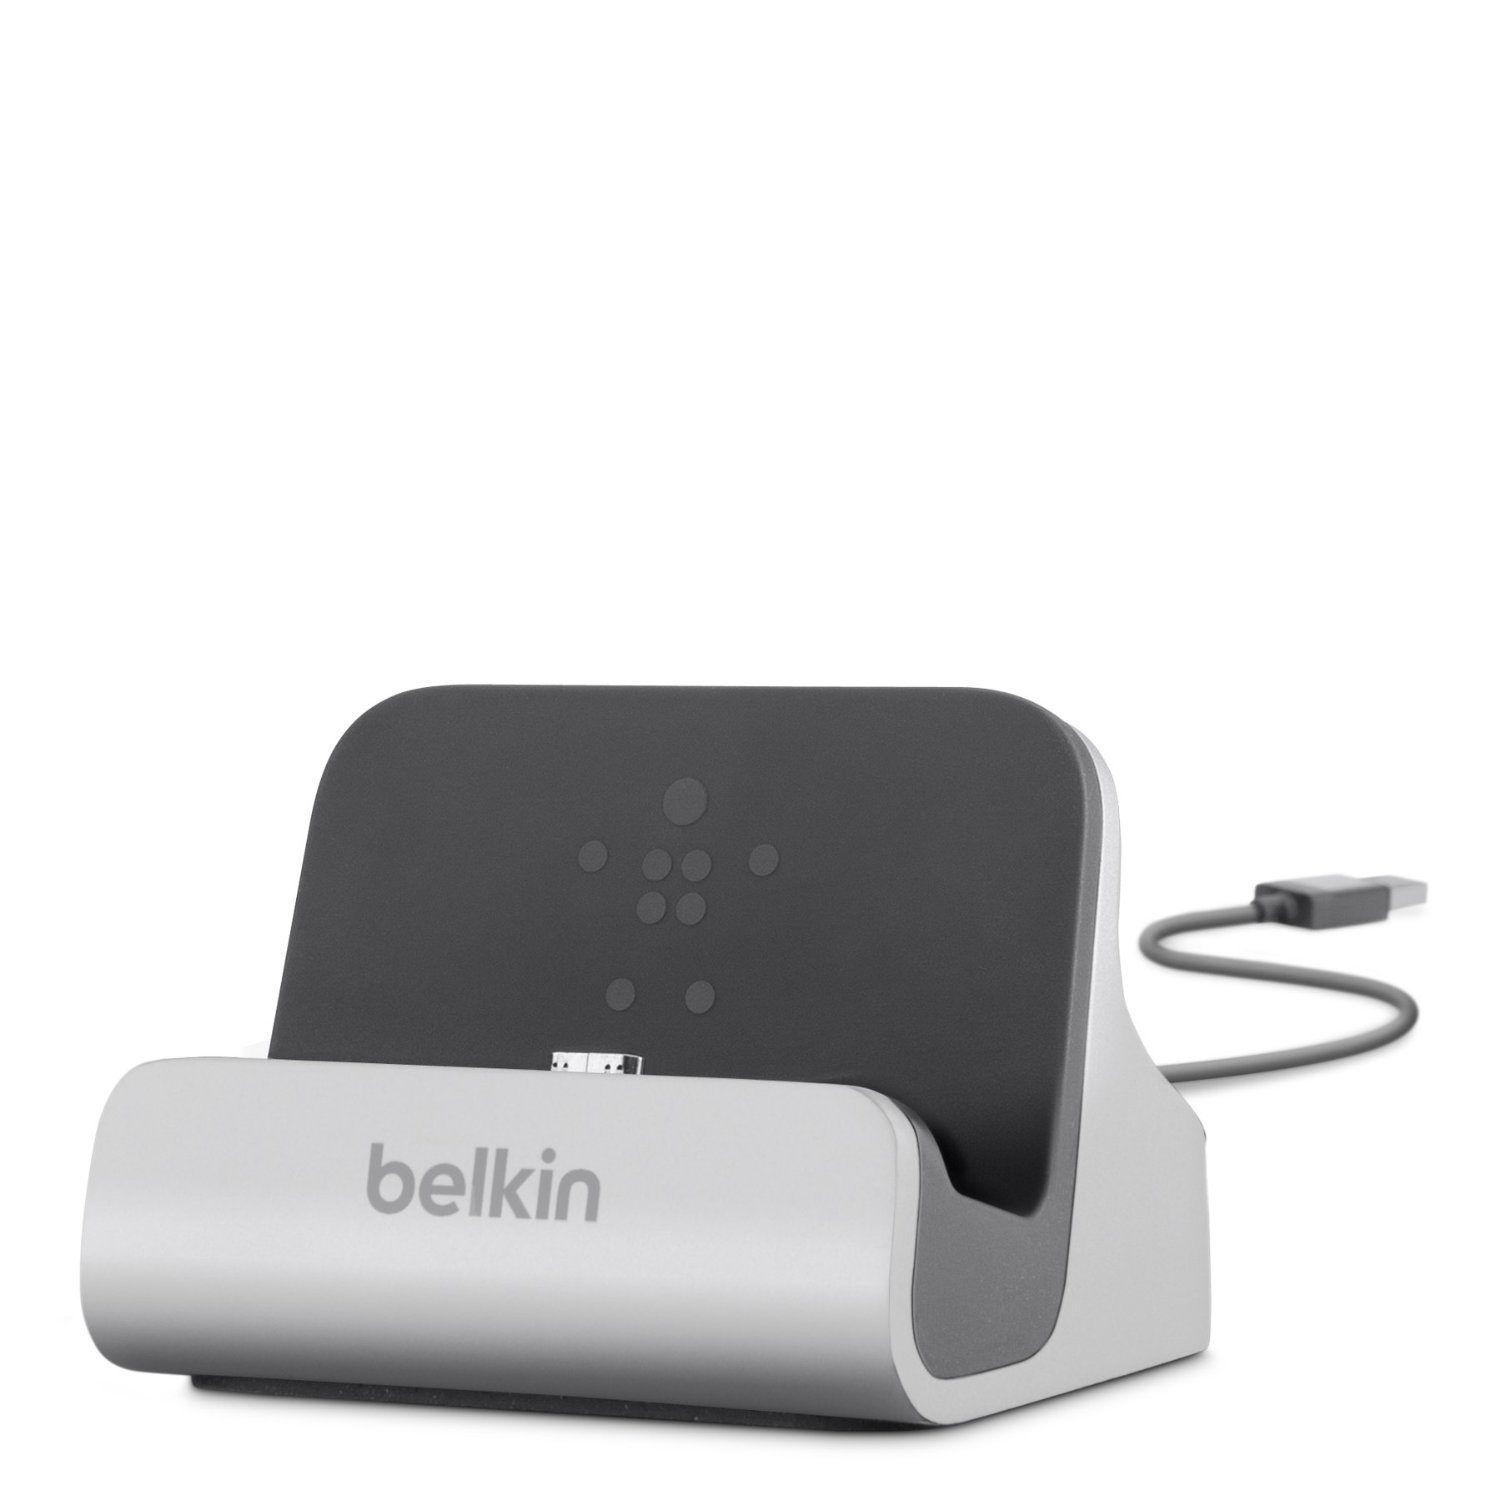 BELKIN Kabel & Adapter »DESKTOP DOCK FOR GALAXY INCL«